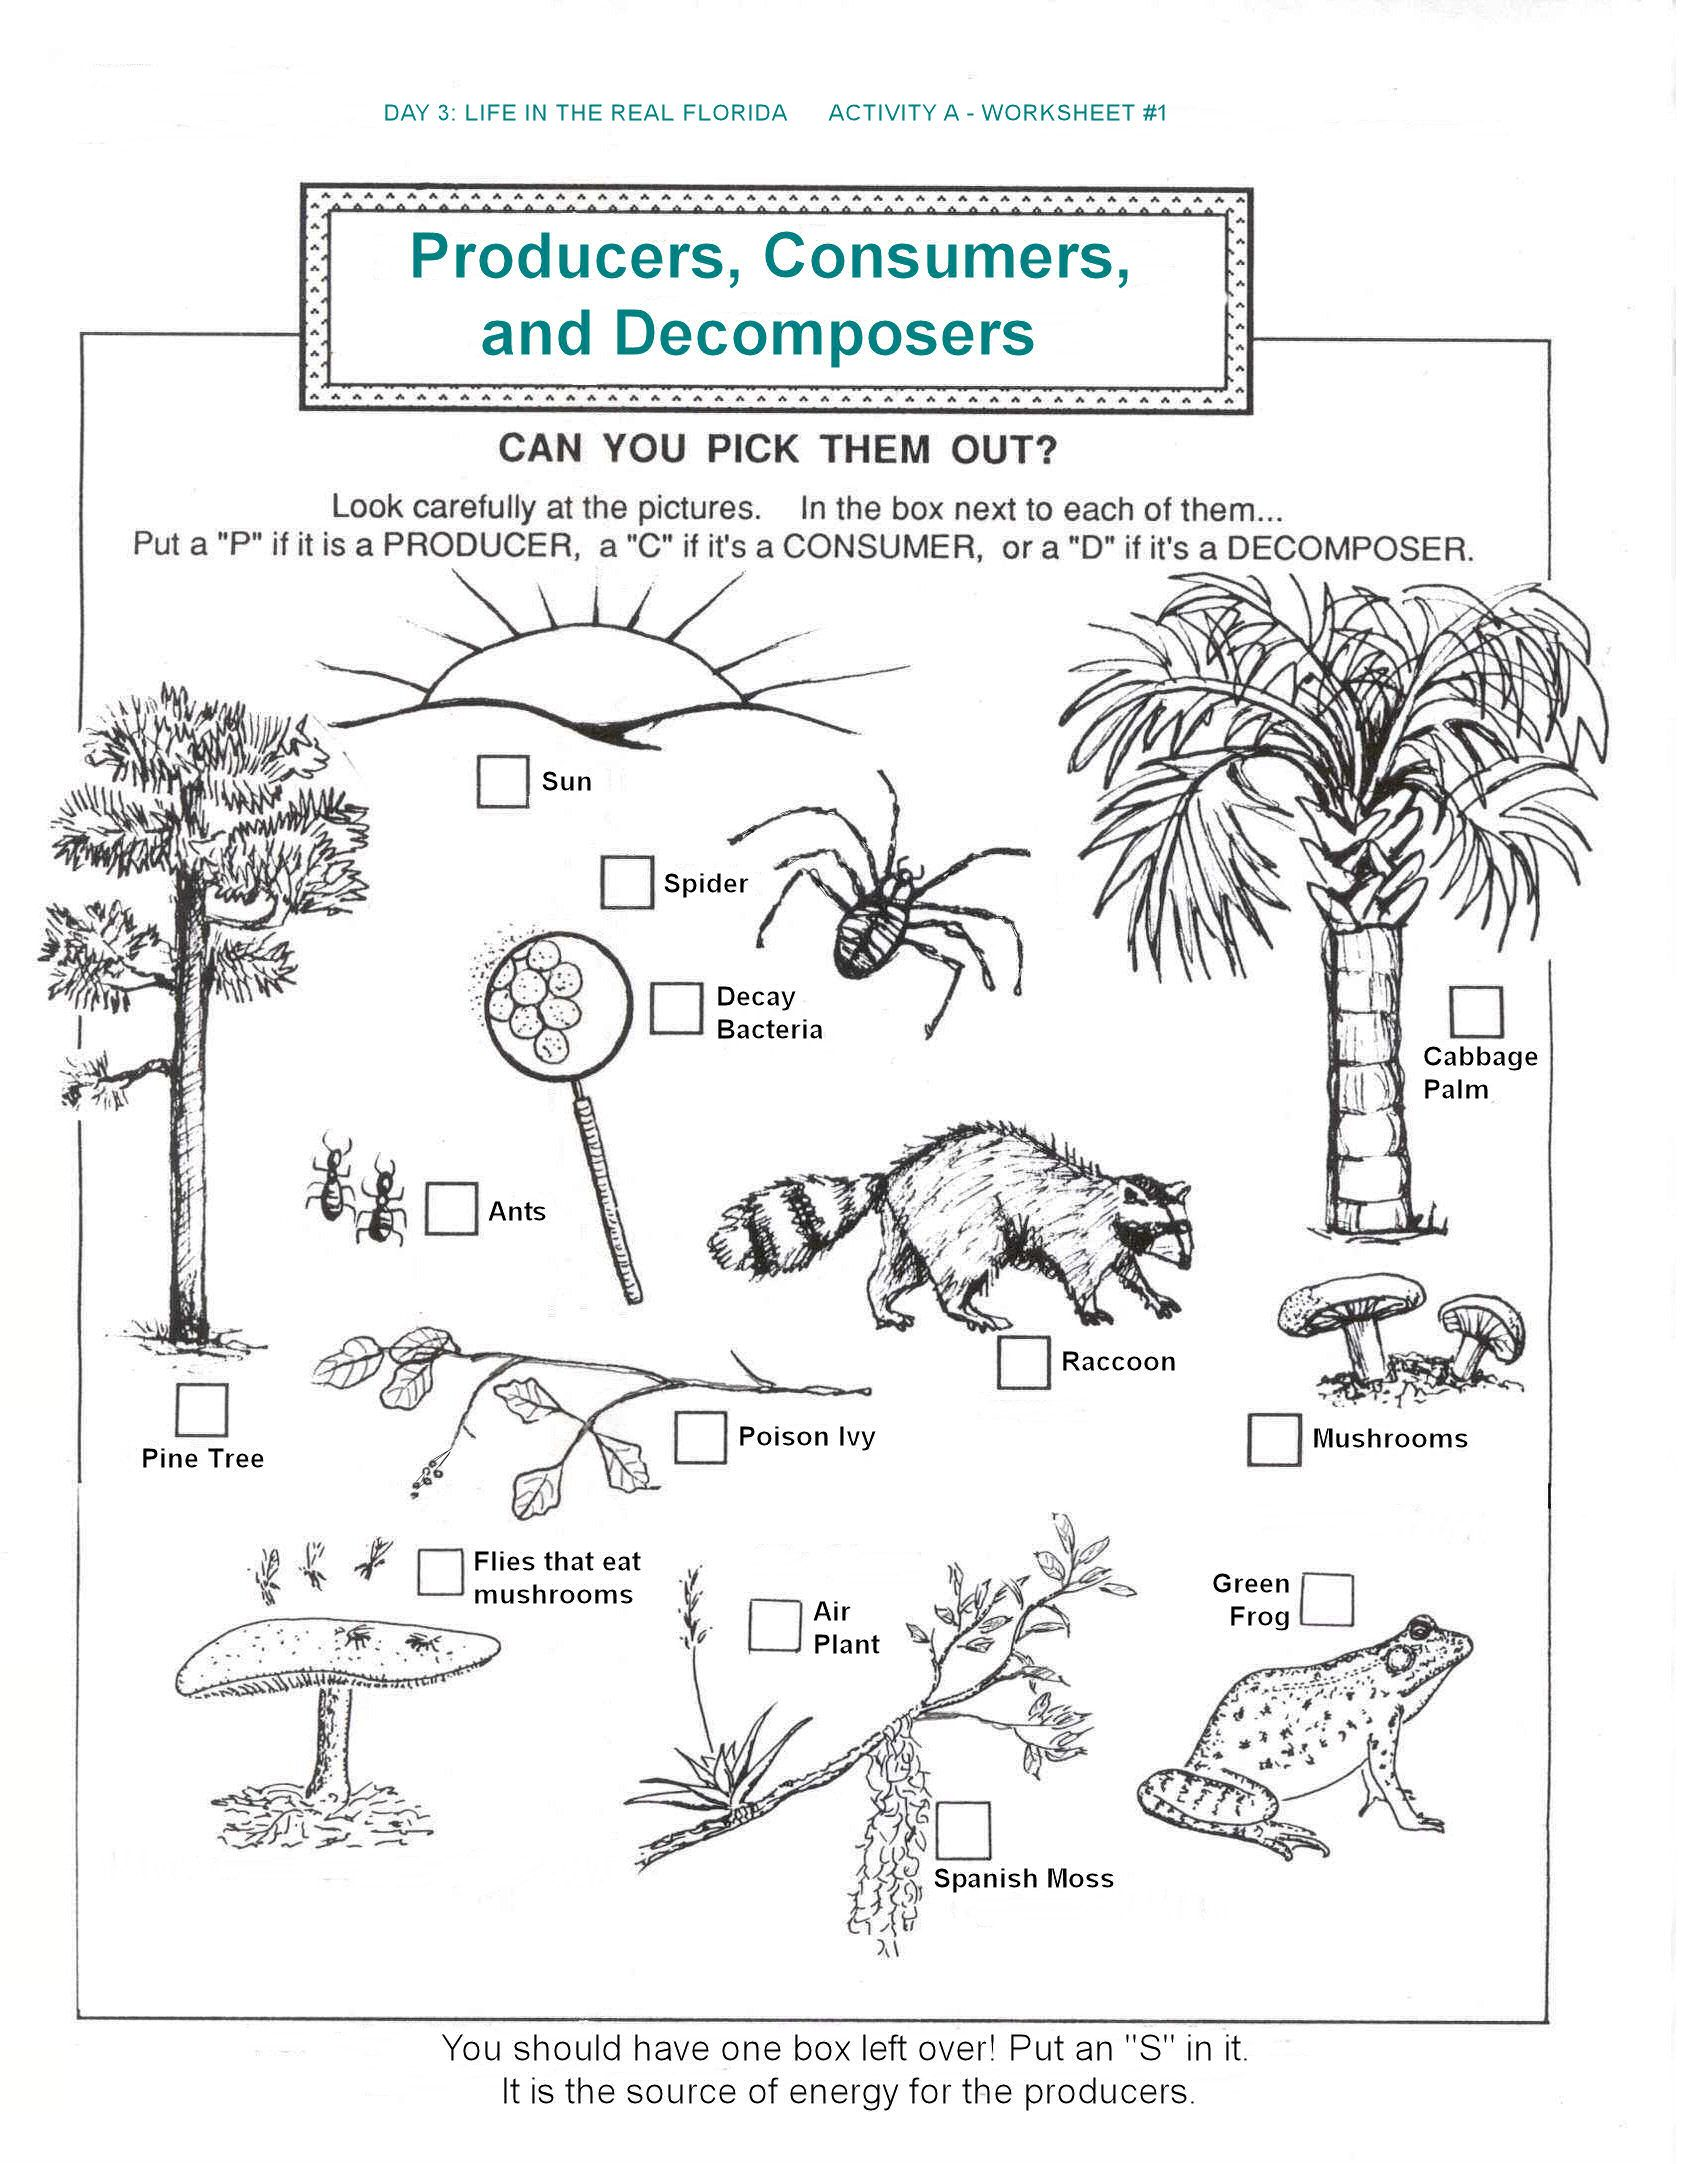 Worksheets Ecology Worksheets decomposers worksheets for kids archbold biological station ecological research conservation